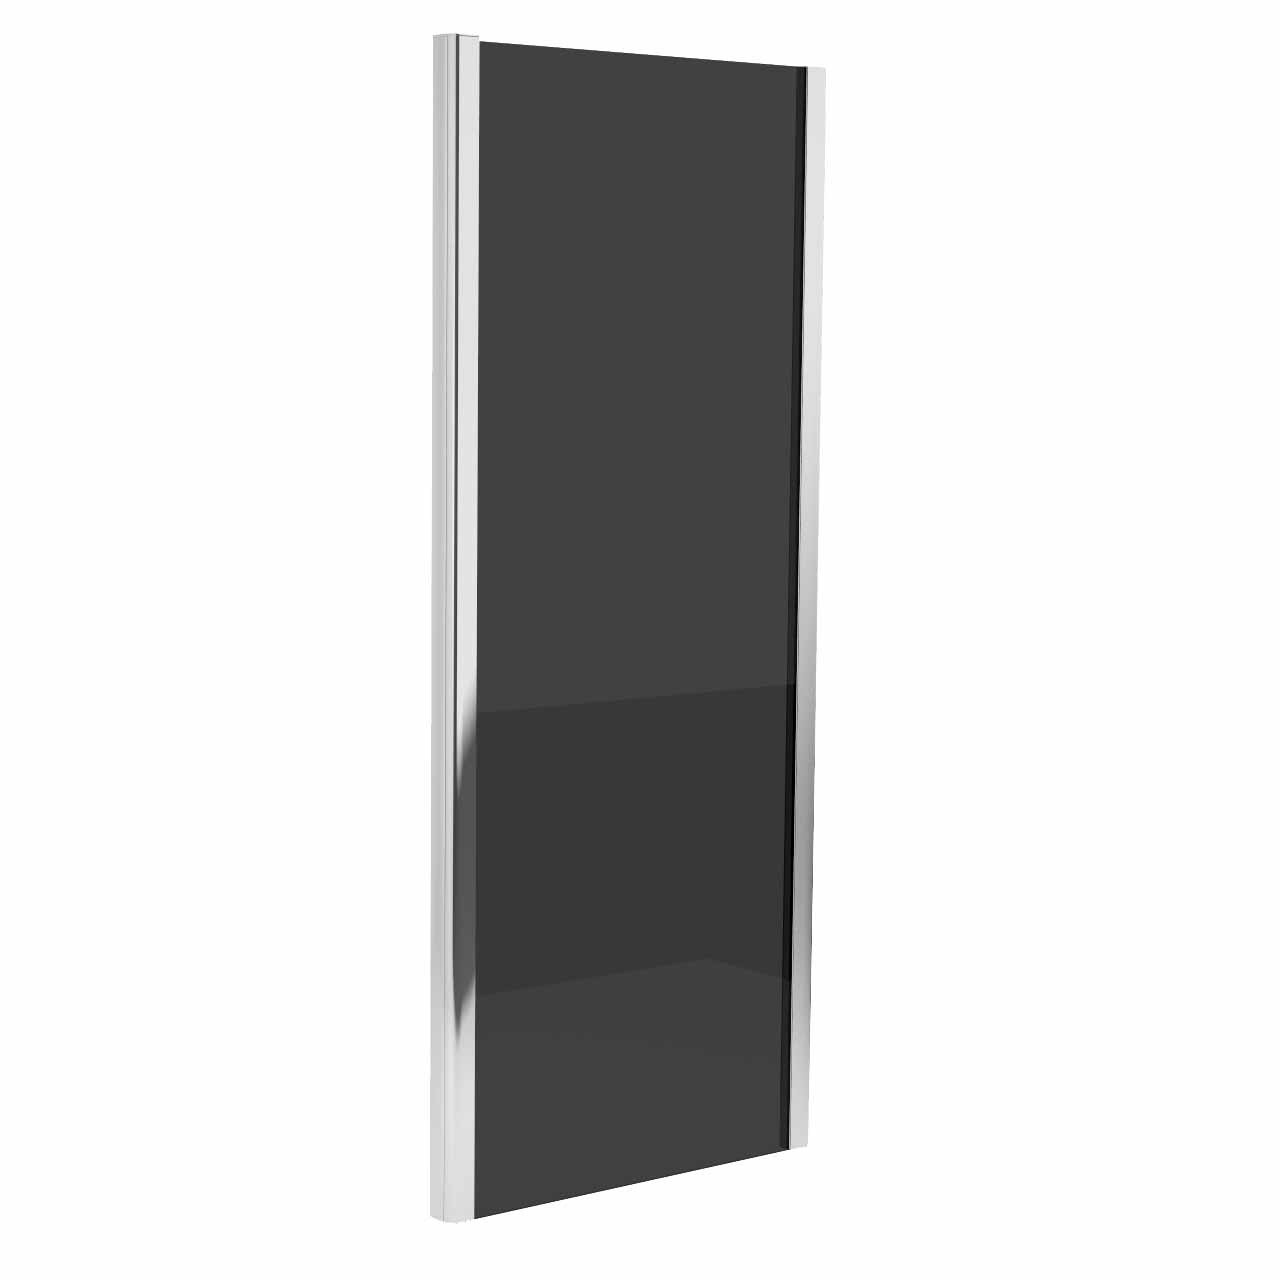 Series 9 900 x 800 Tinted Hinged Door Enclosure